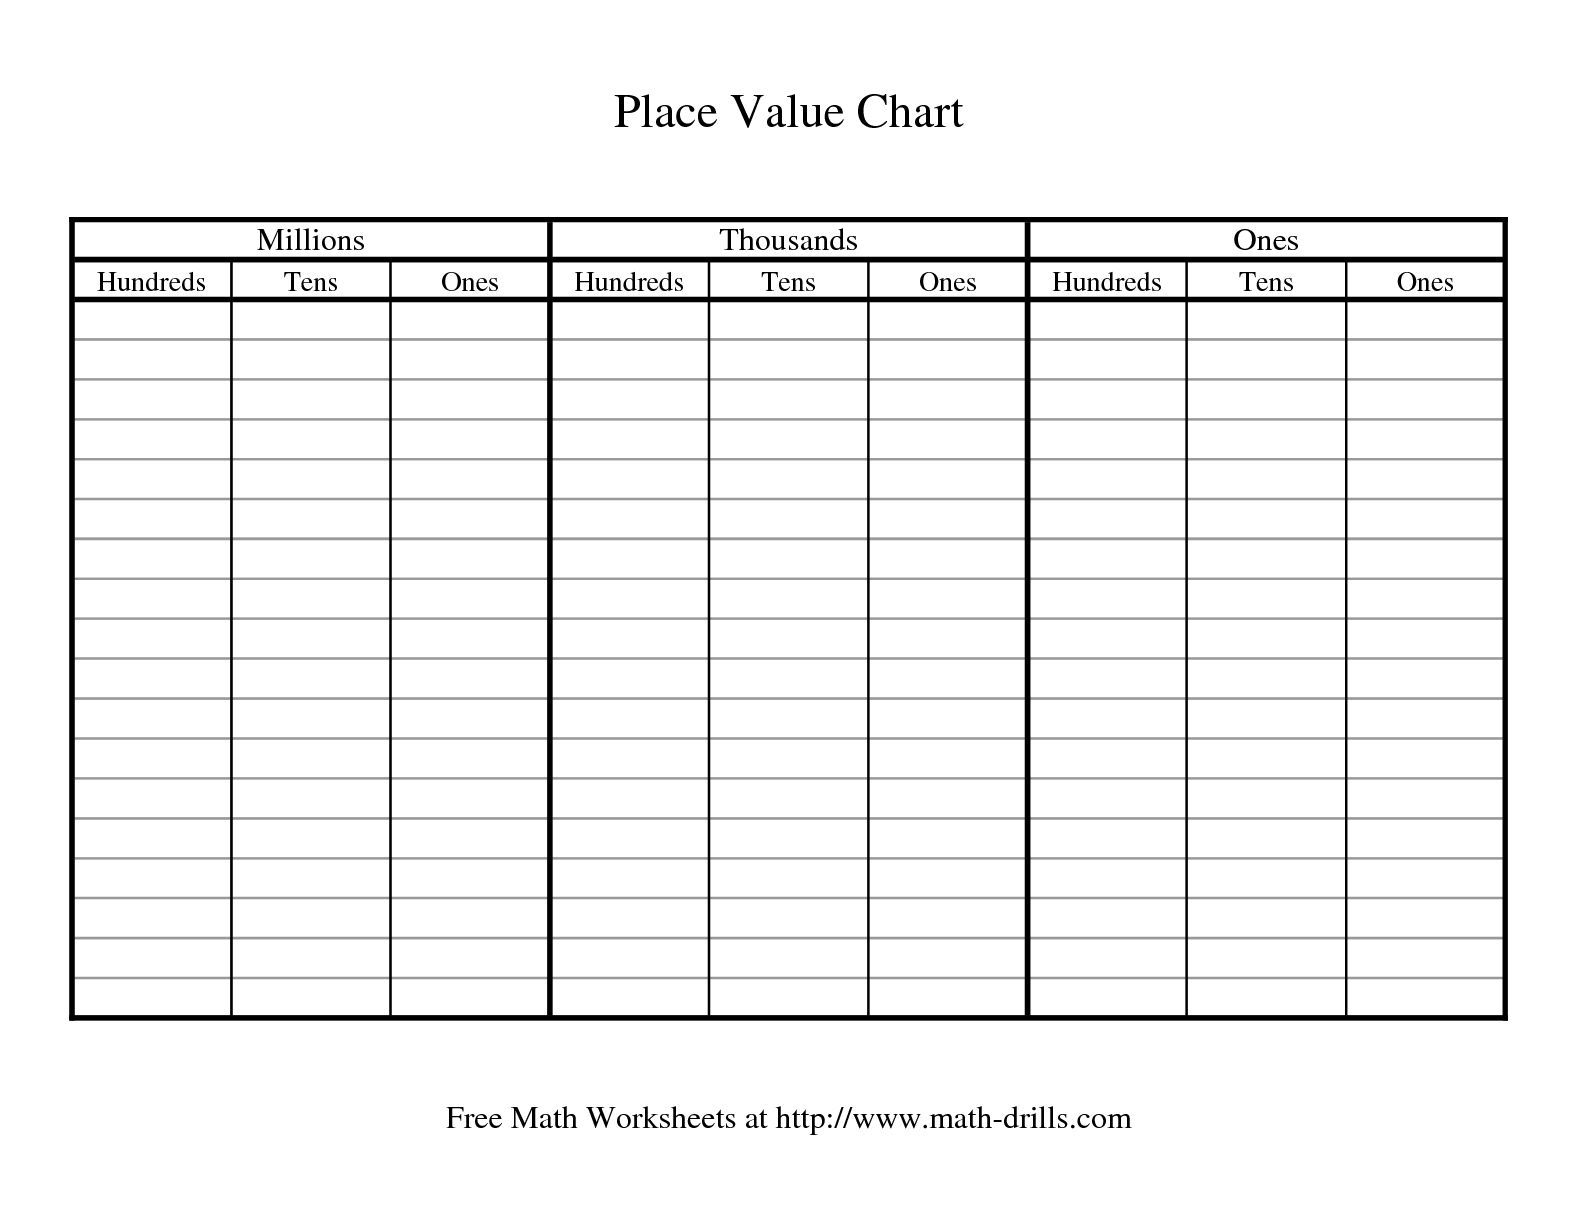 The Whole Number Place Value Chart Math Worksheet From The Place Value Worksheet Page At Mat Place Value With Decimals Place Value Worksheets Place Value Chart